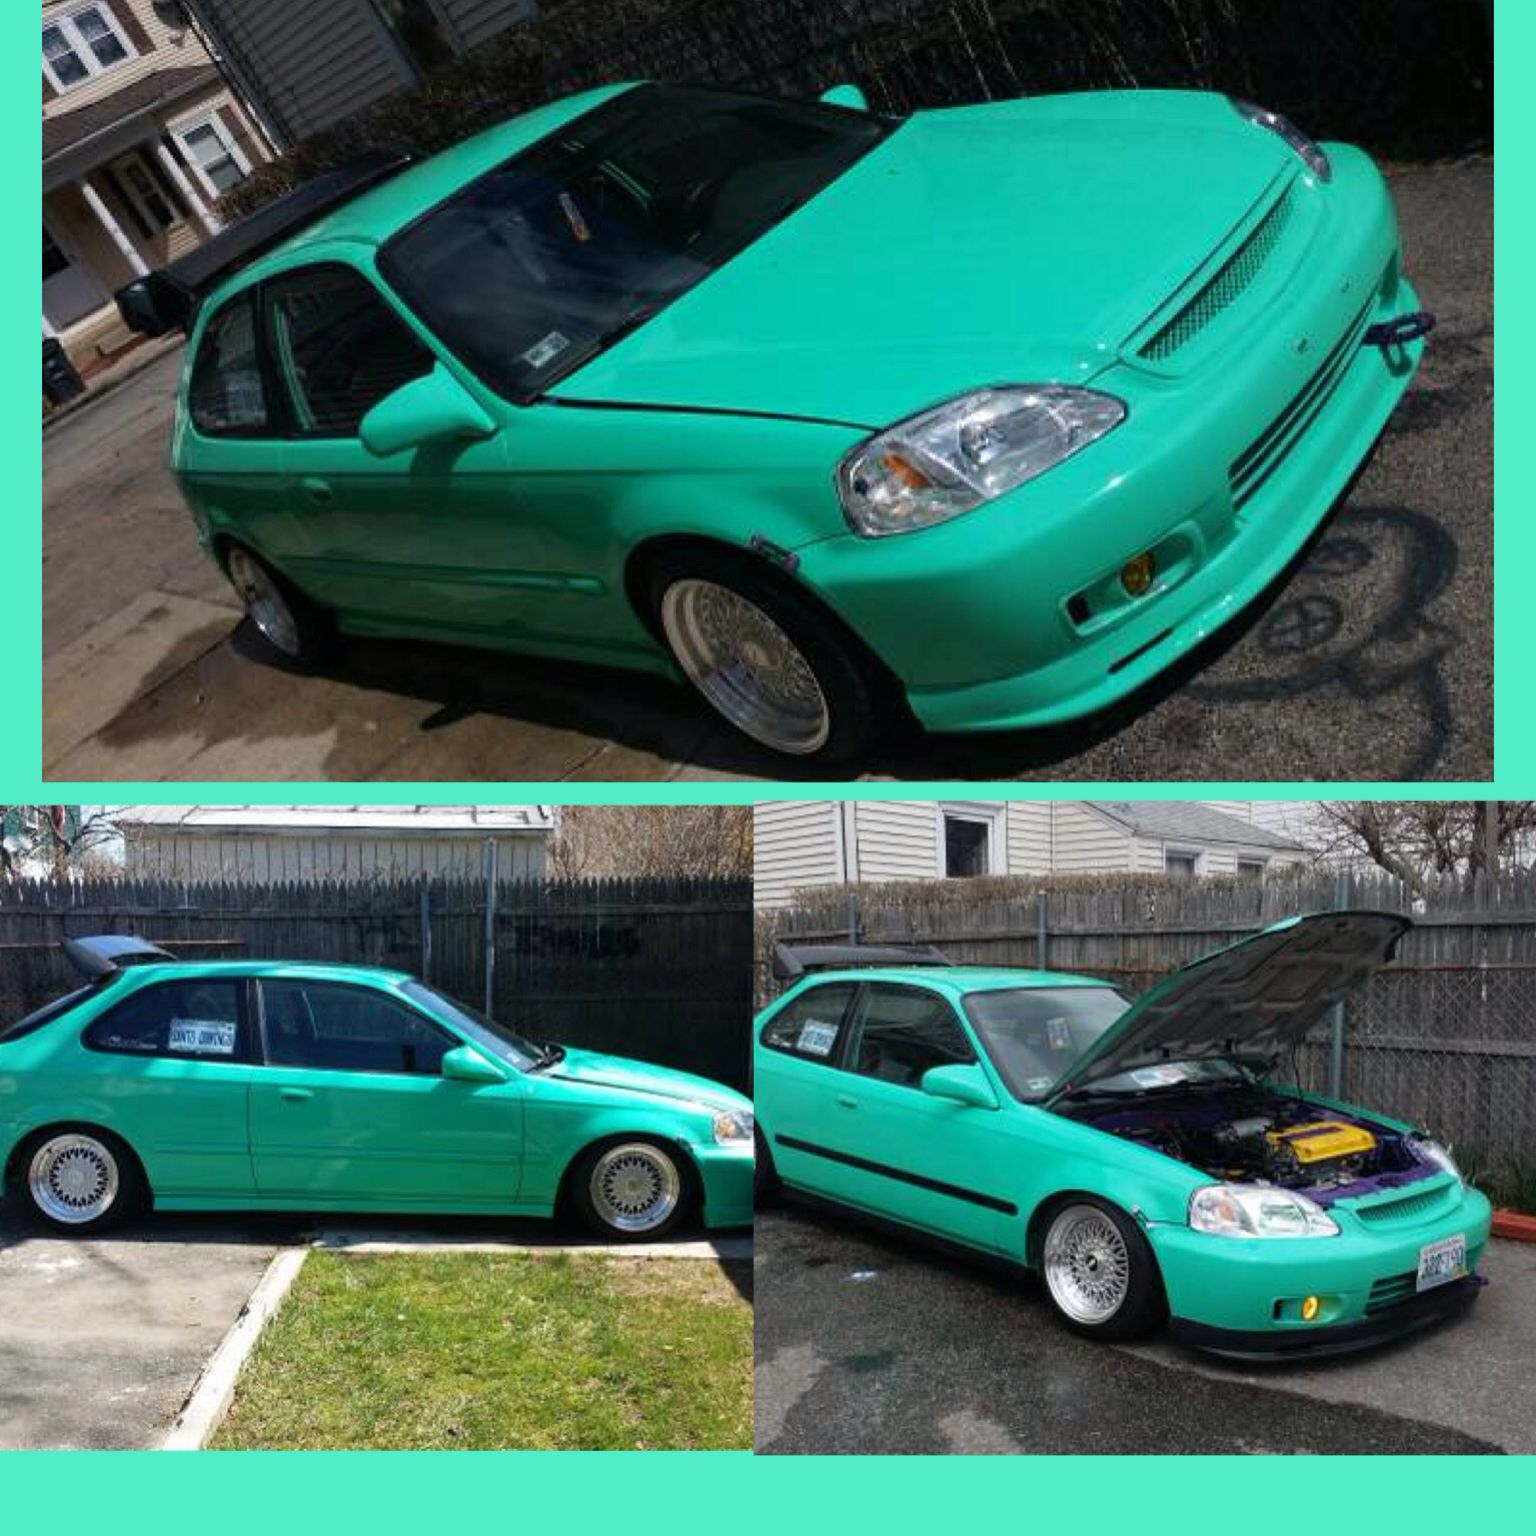 Found this 2000 Honda Civic On craigslist for $5000  Fave color